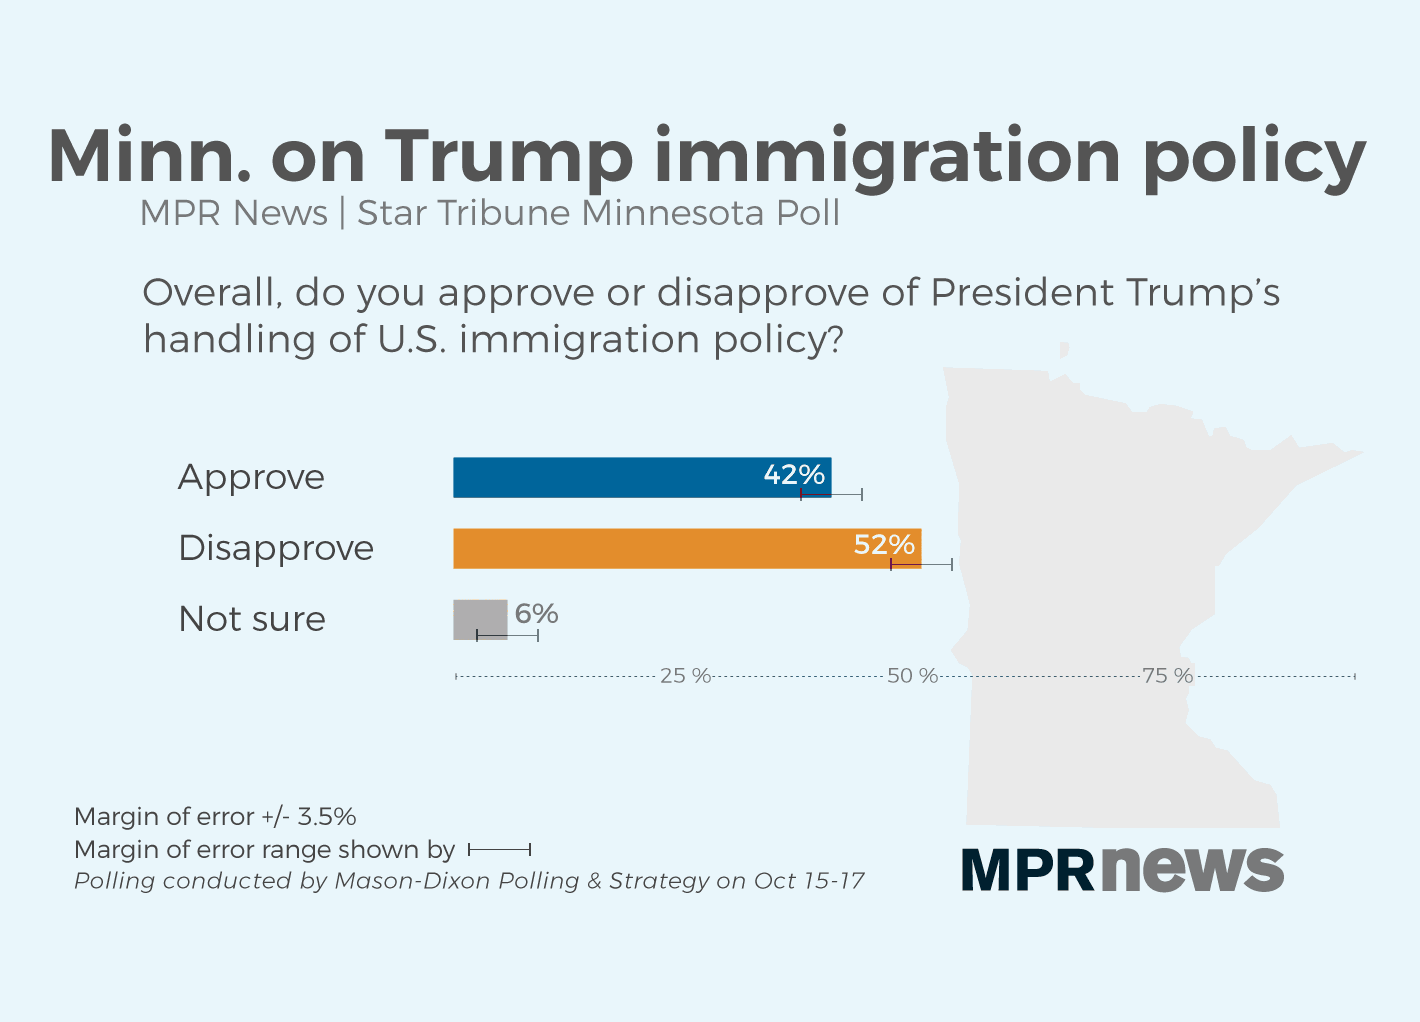 42 percent approve of how President Trump is handling immigration policy.